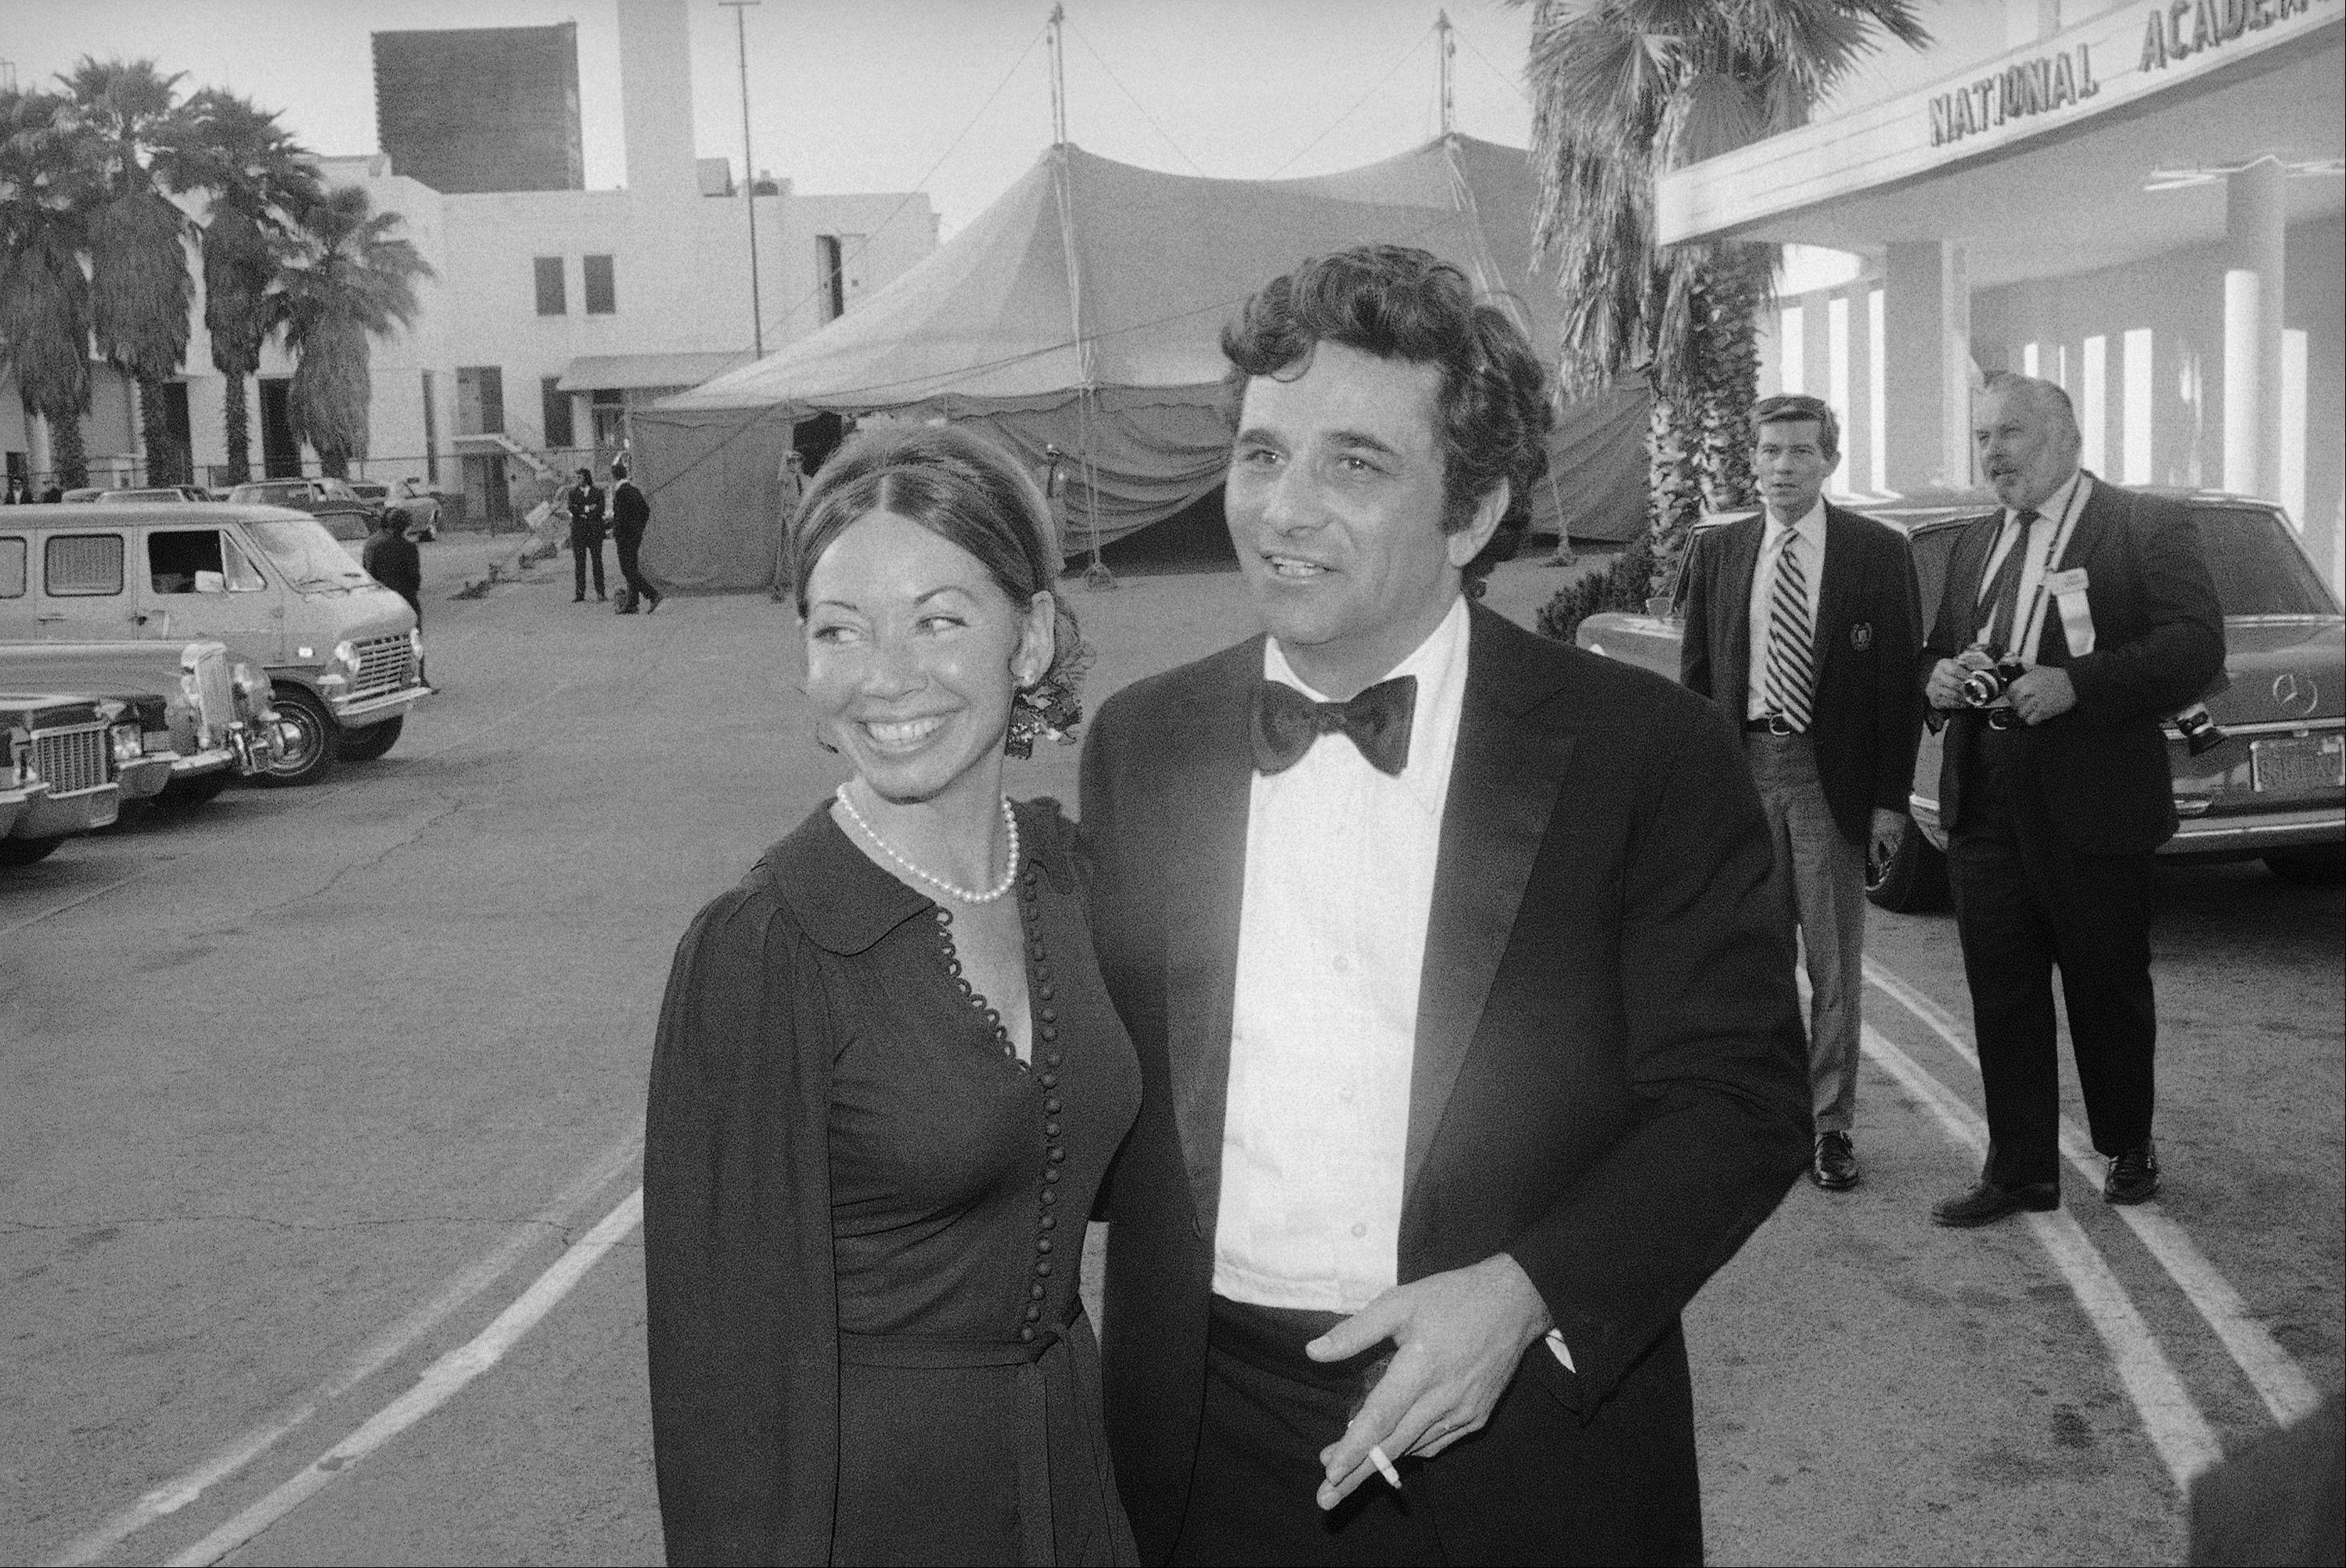 Peter Falk and his wife Alyce attend the Emmy Awards in this 1972 photo in Los Angeles.